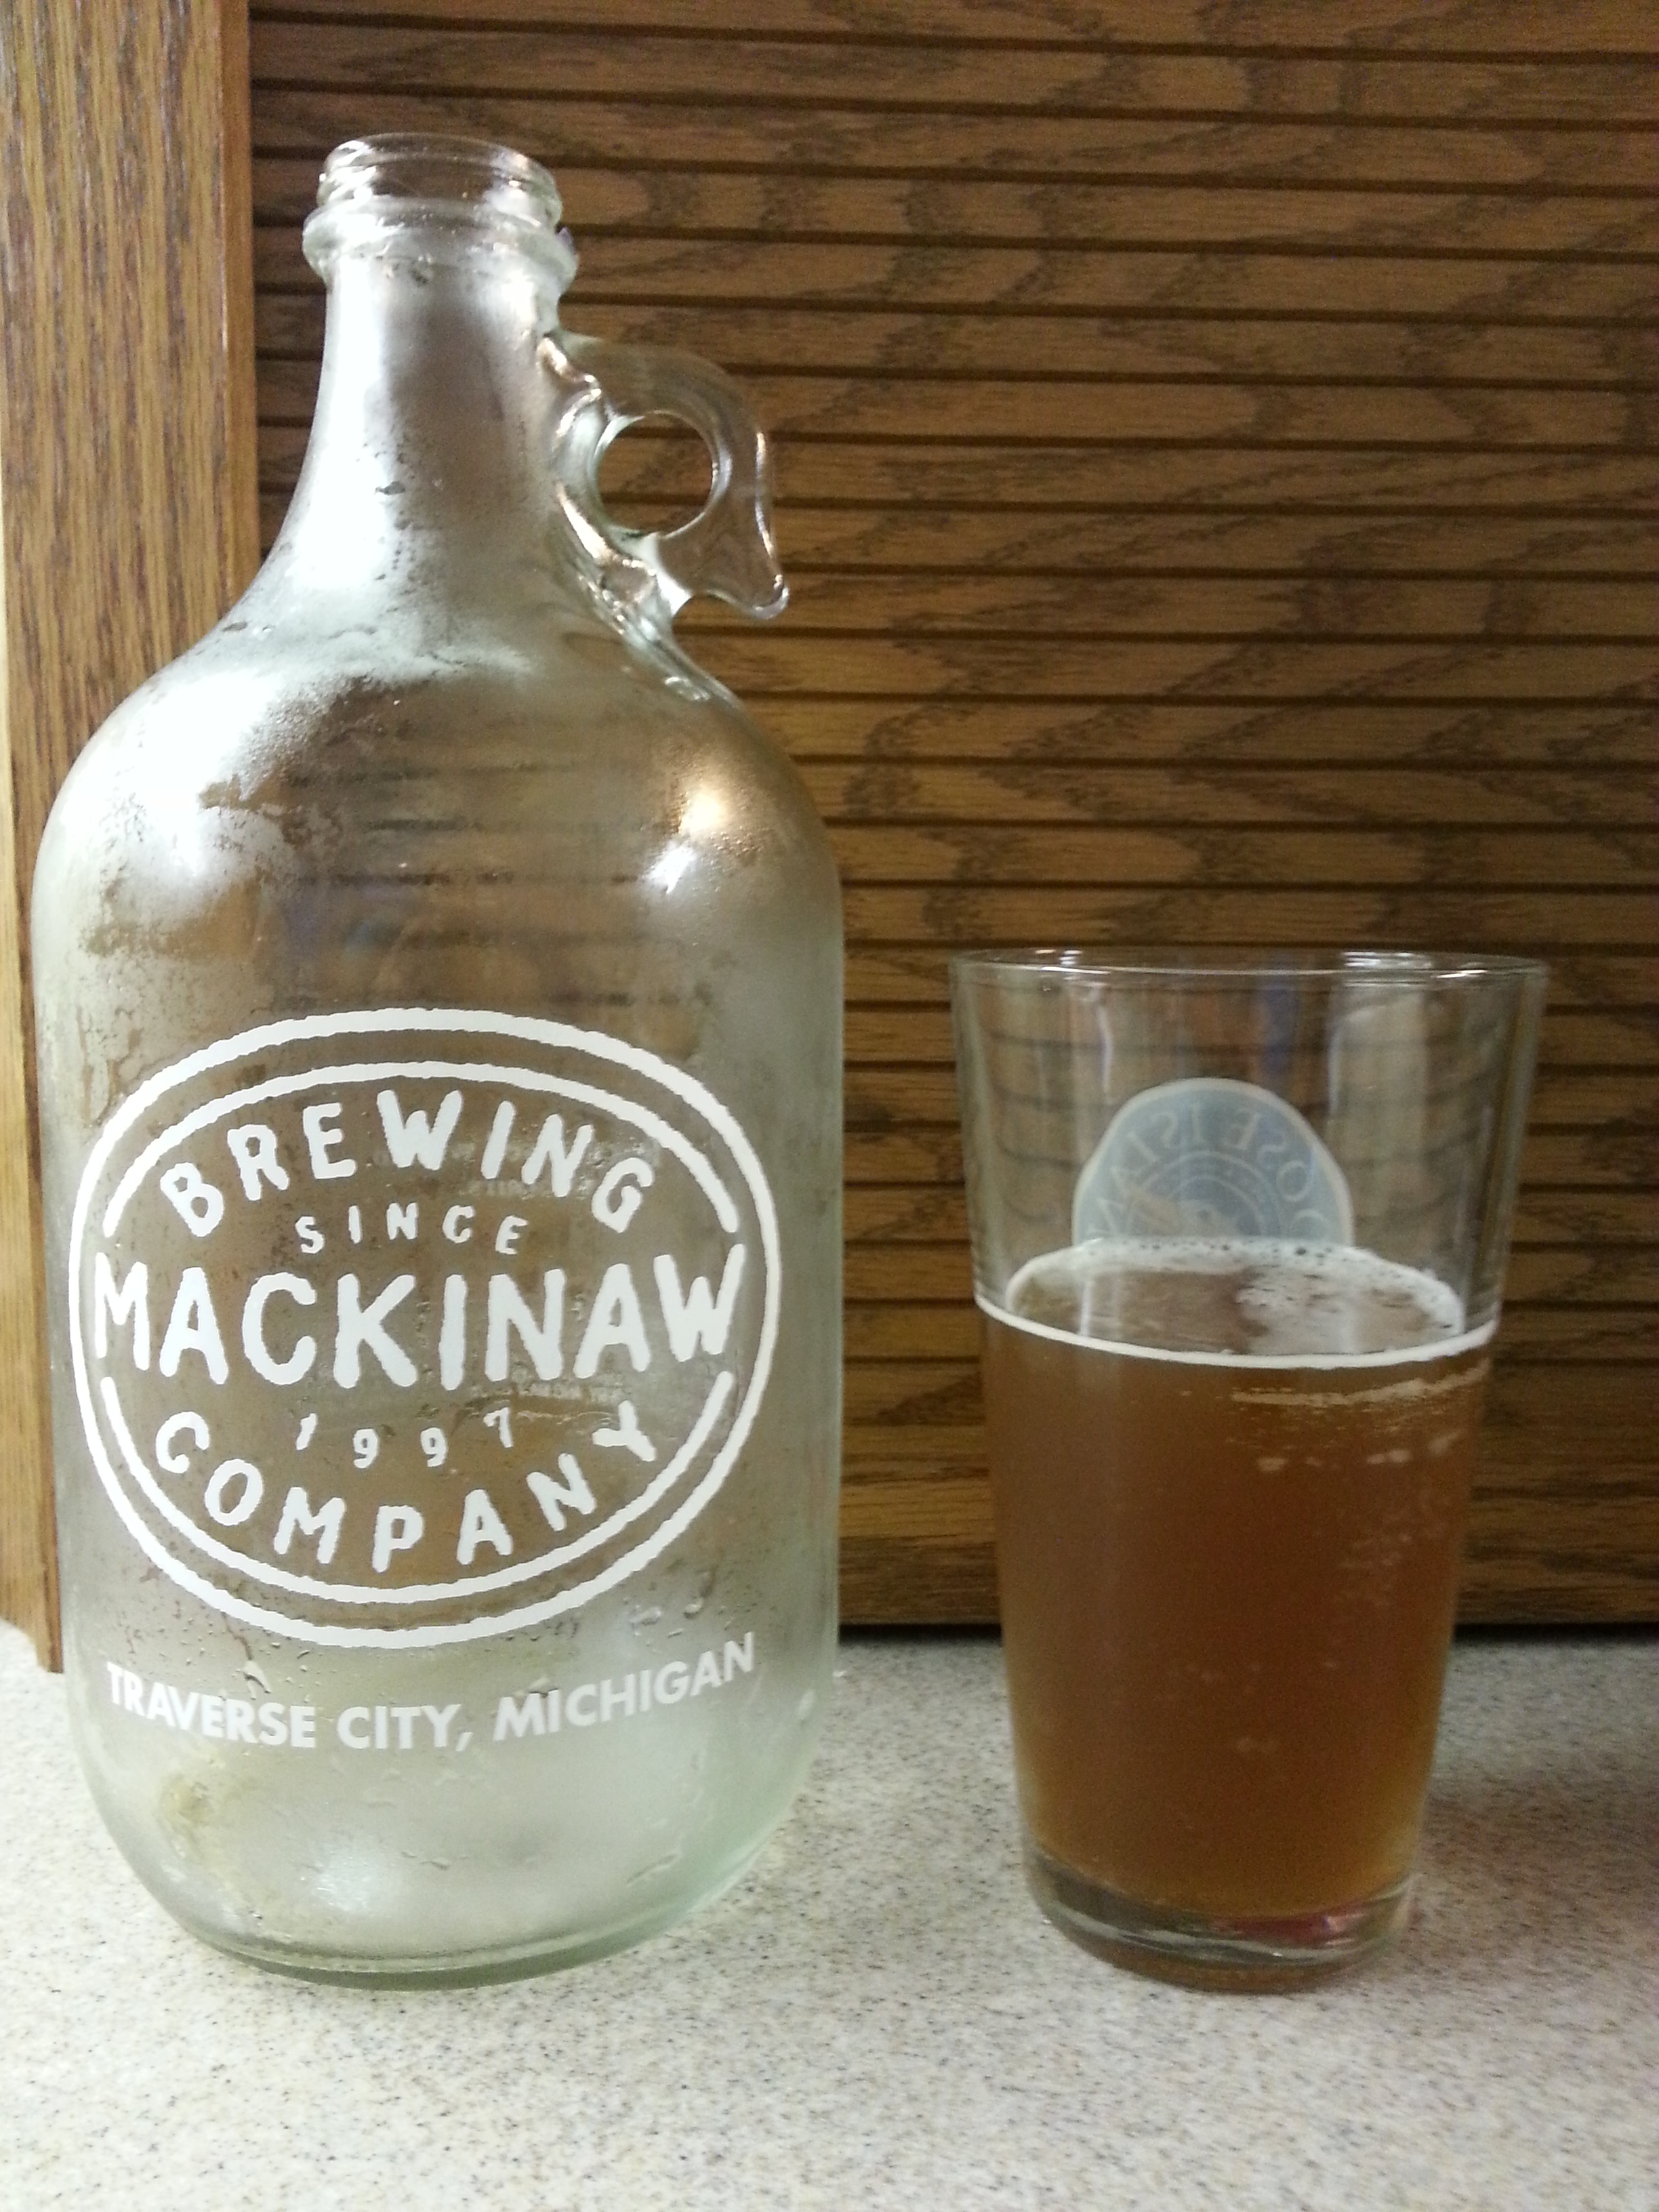 Mackinaw West Bay IPA